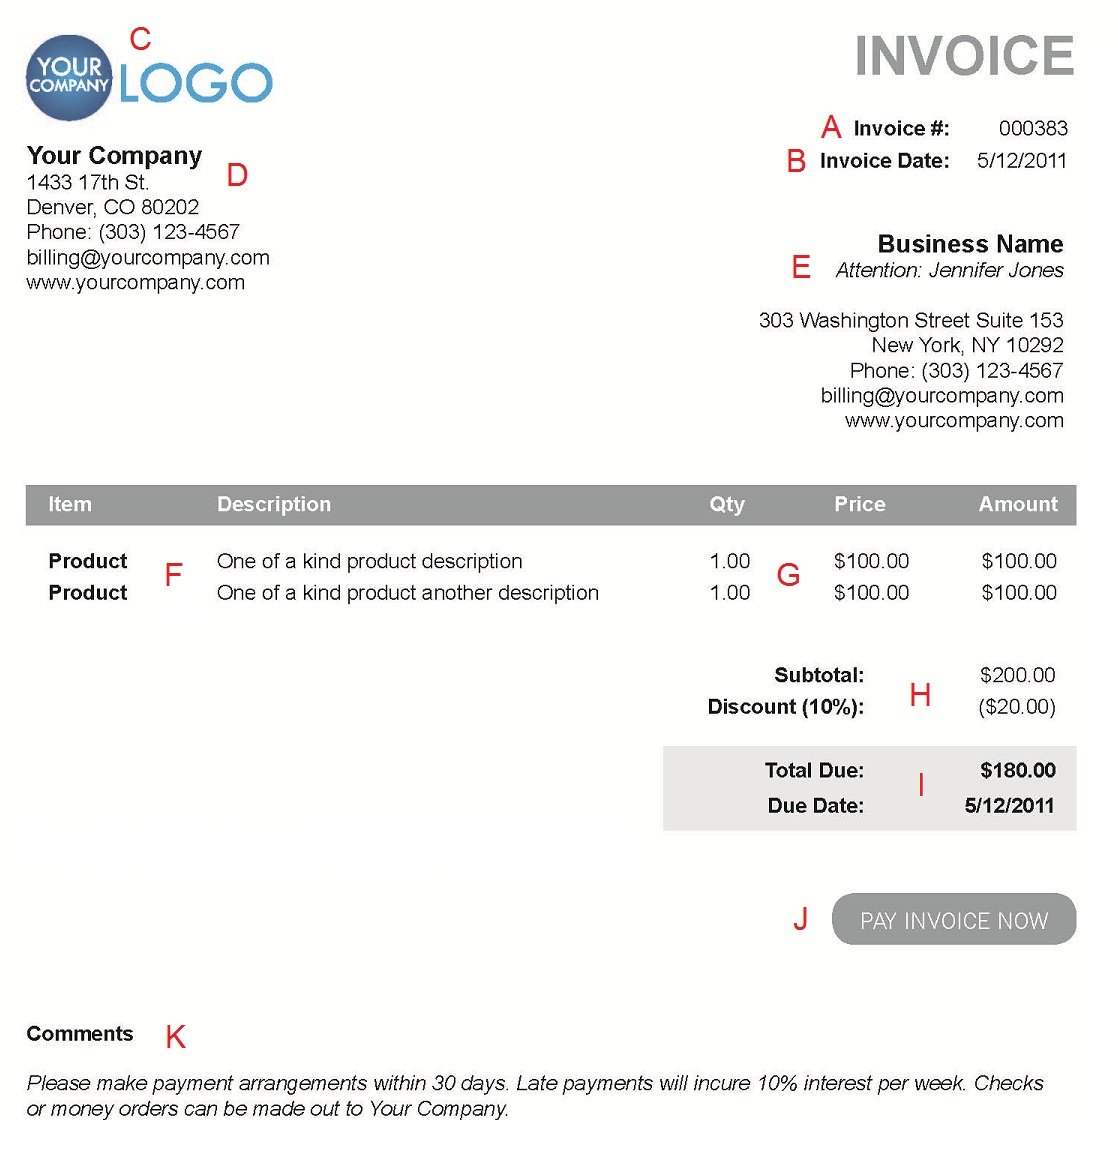 Opposenewapstandardsus  Remarkable The  Different Sections Of An Electronic Payment Invoice With Outstanding A  With Captivating Invoice Creation Also Hvac Service Invoice In Addition Invoice Vs Quote And My Deluxe Invoices As Well As Car Invoice Prices  Additionally Commercial Invoice For Customs From Paysimplecom With Opposenewapstandardsus  Outstanding The  Different Sections Of An Electronic Payment Invoice With Captivating A  And Remarkable Invoice Creation Also Hvac Service Invoice In Addition Invoice Vs Quote From Paysimplecom